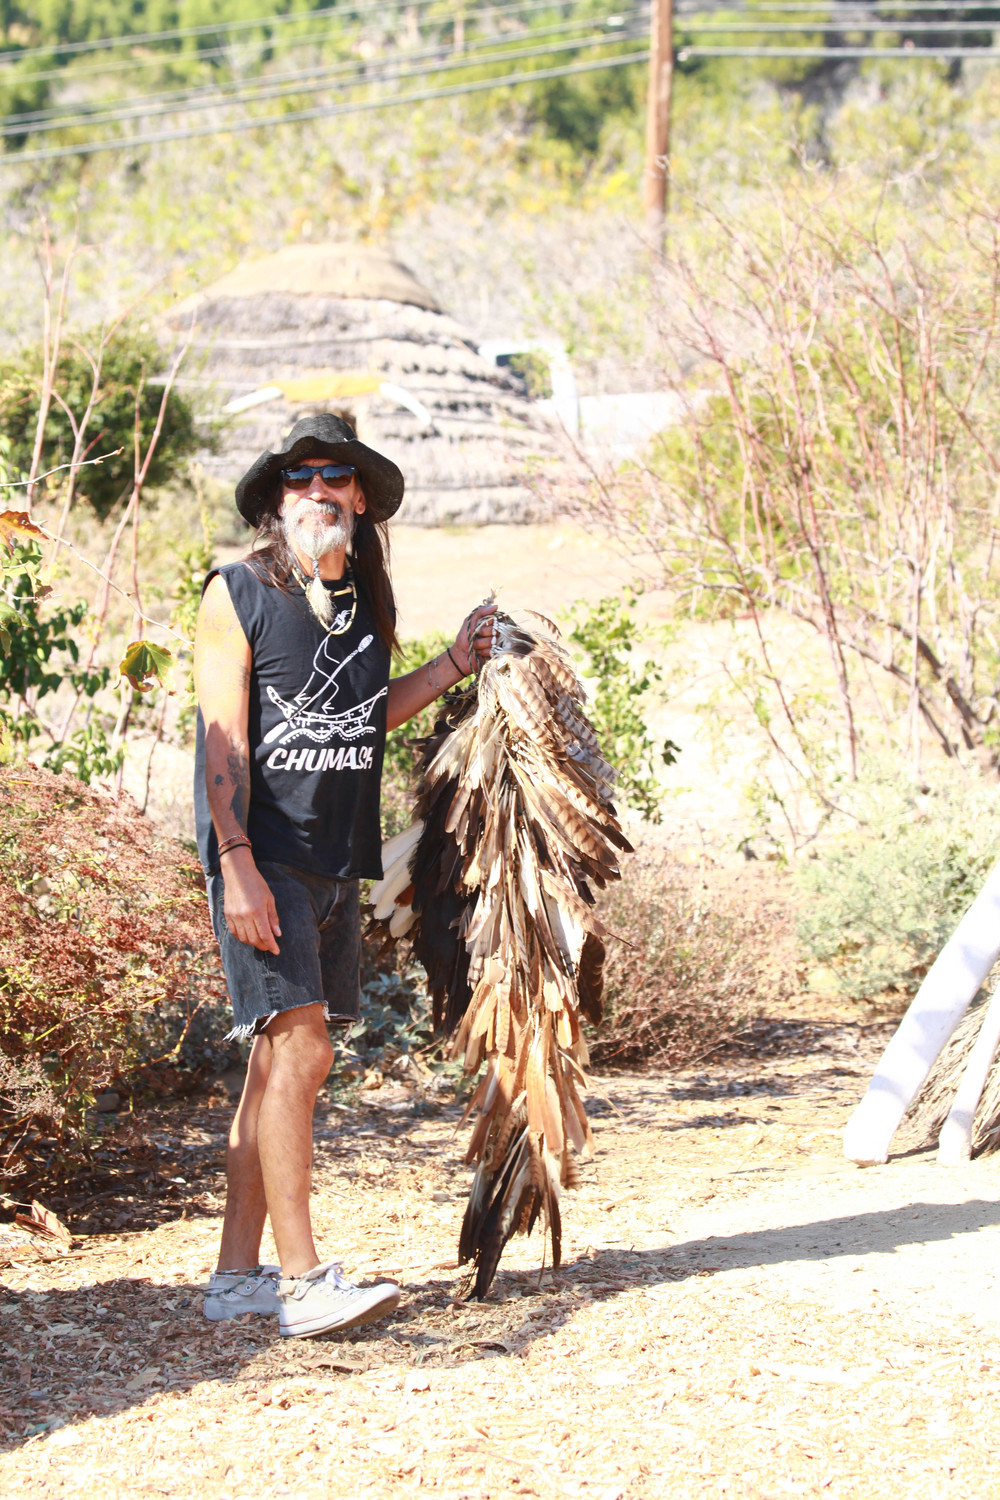 David Paul Dominguez, Traditional Chumash Dancer